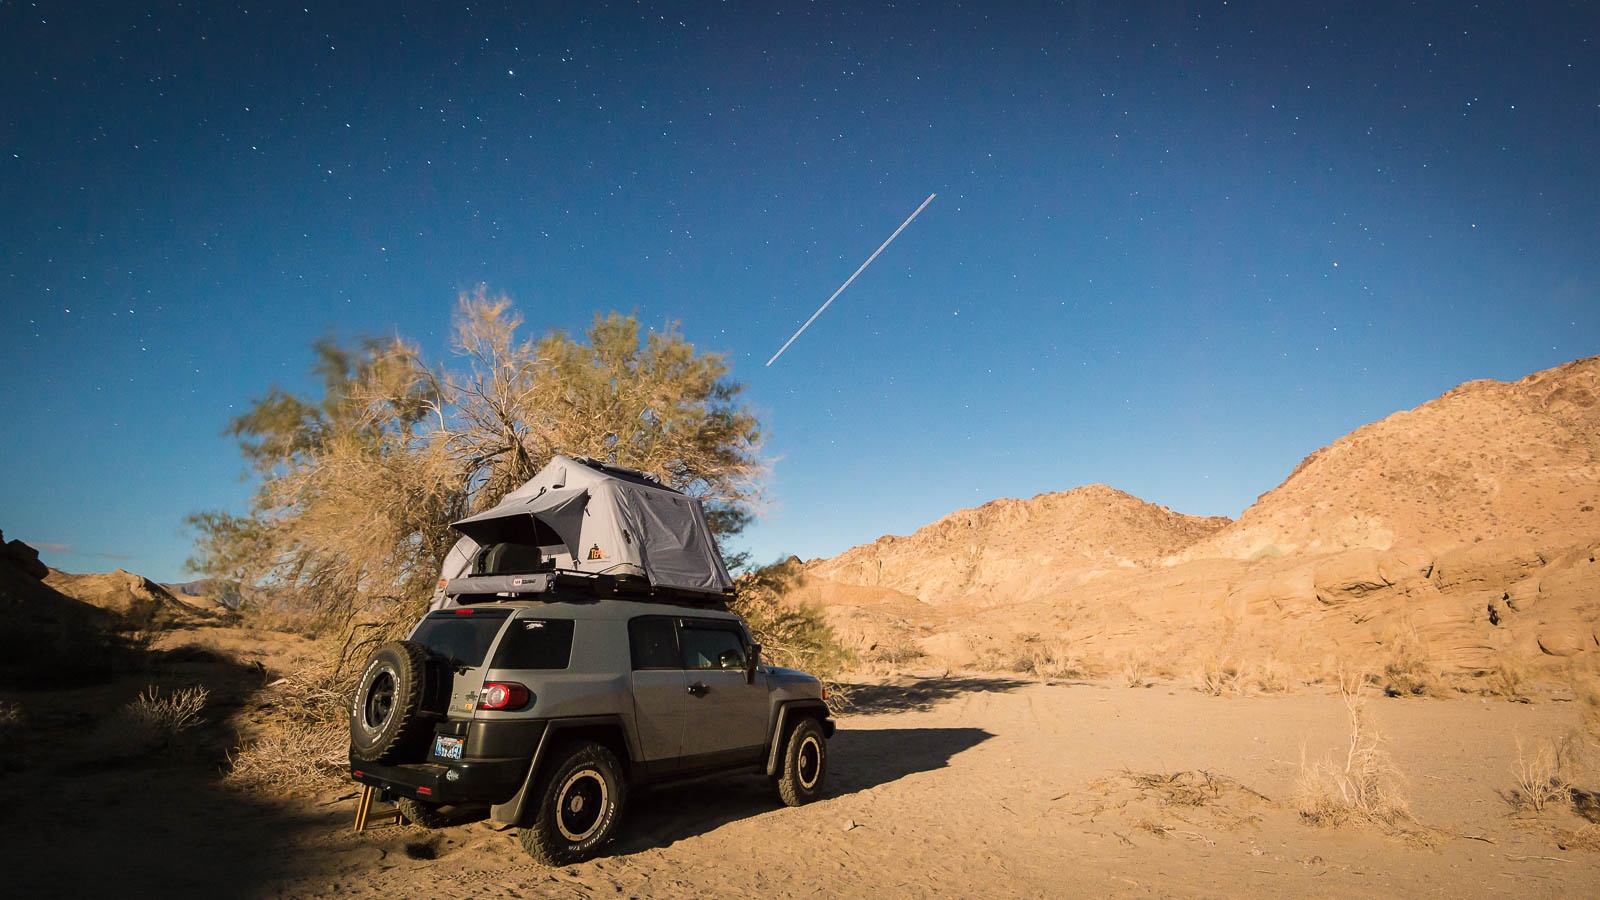 FJ Cruiser Overlanding – Trial Run in Anza-Borrego